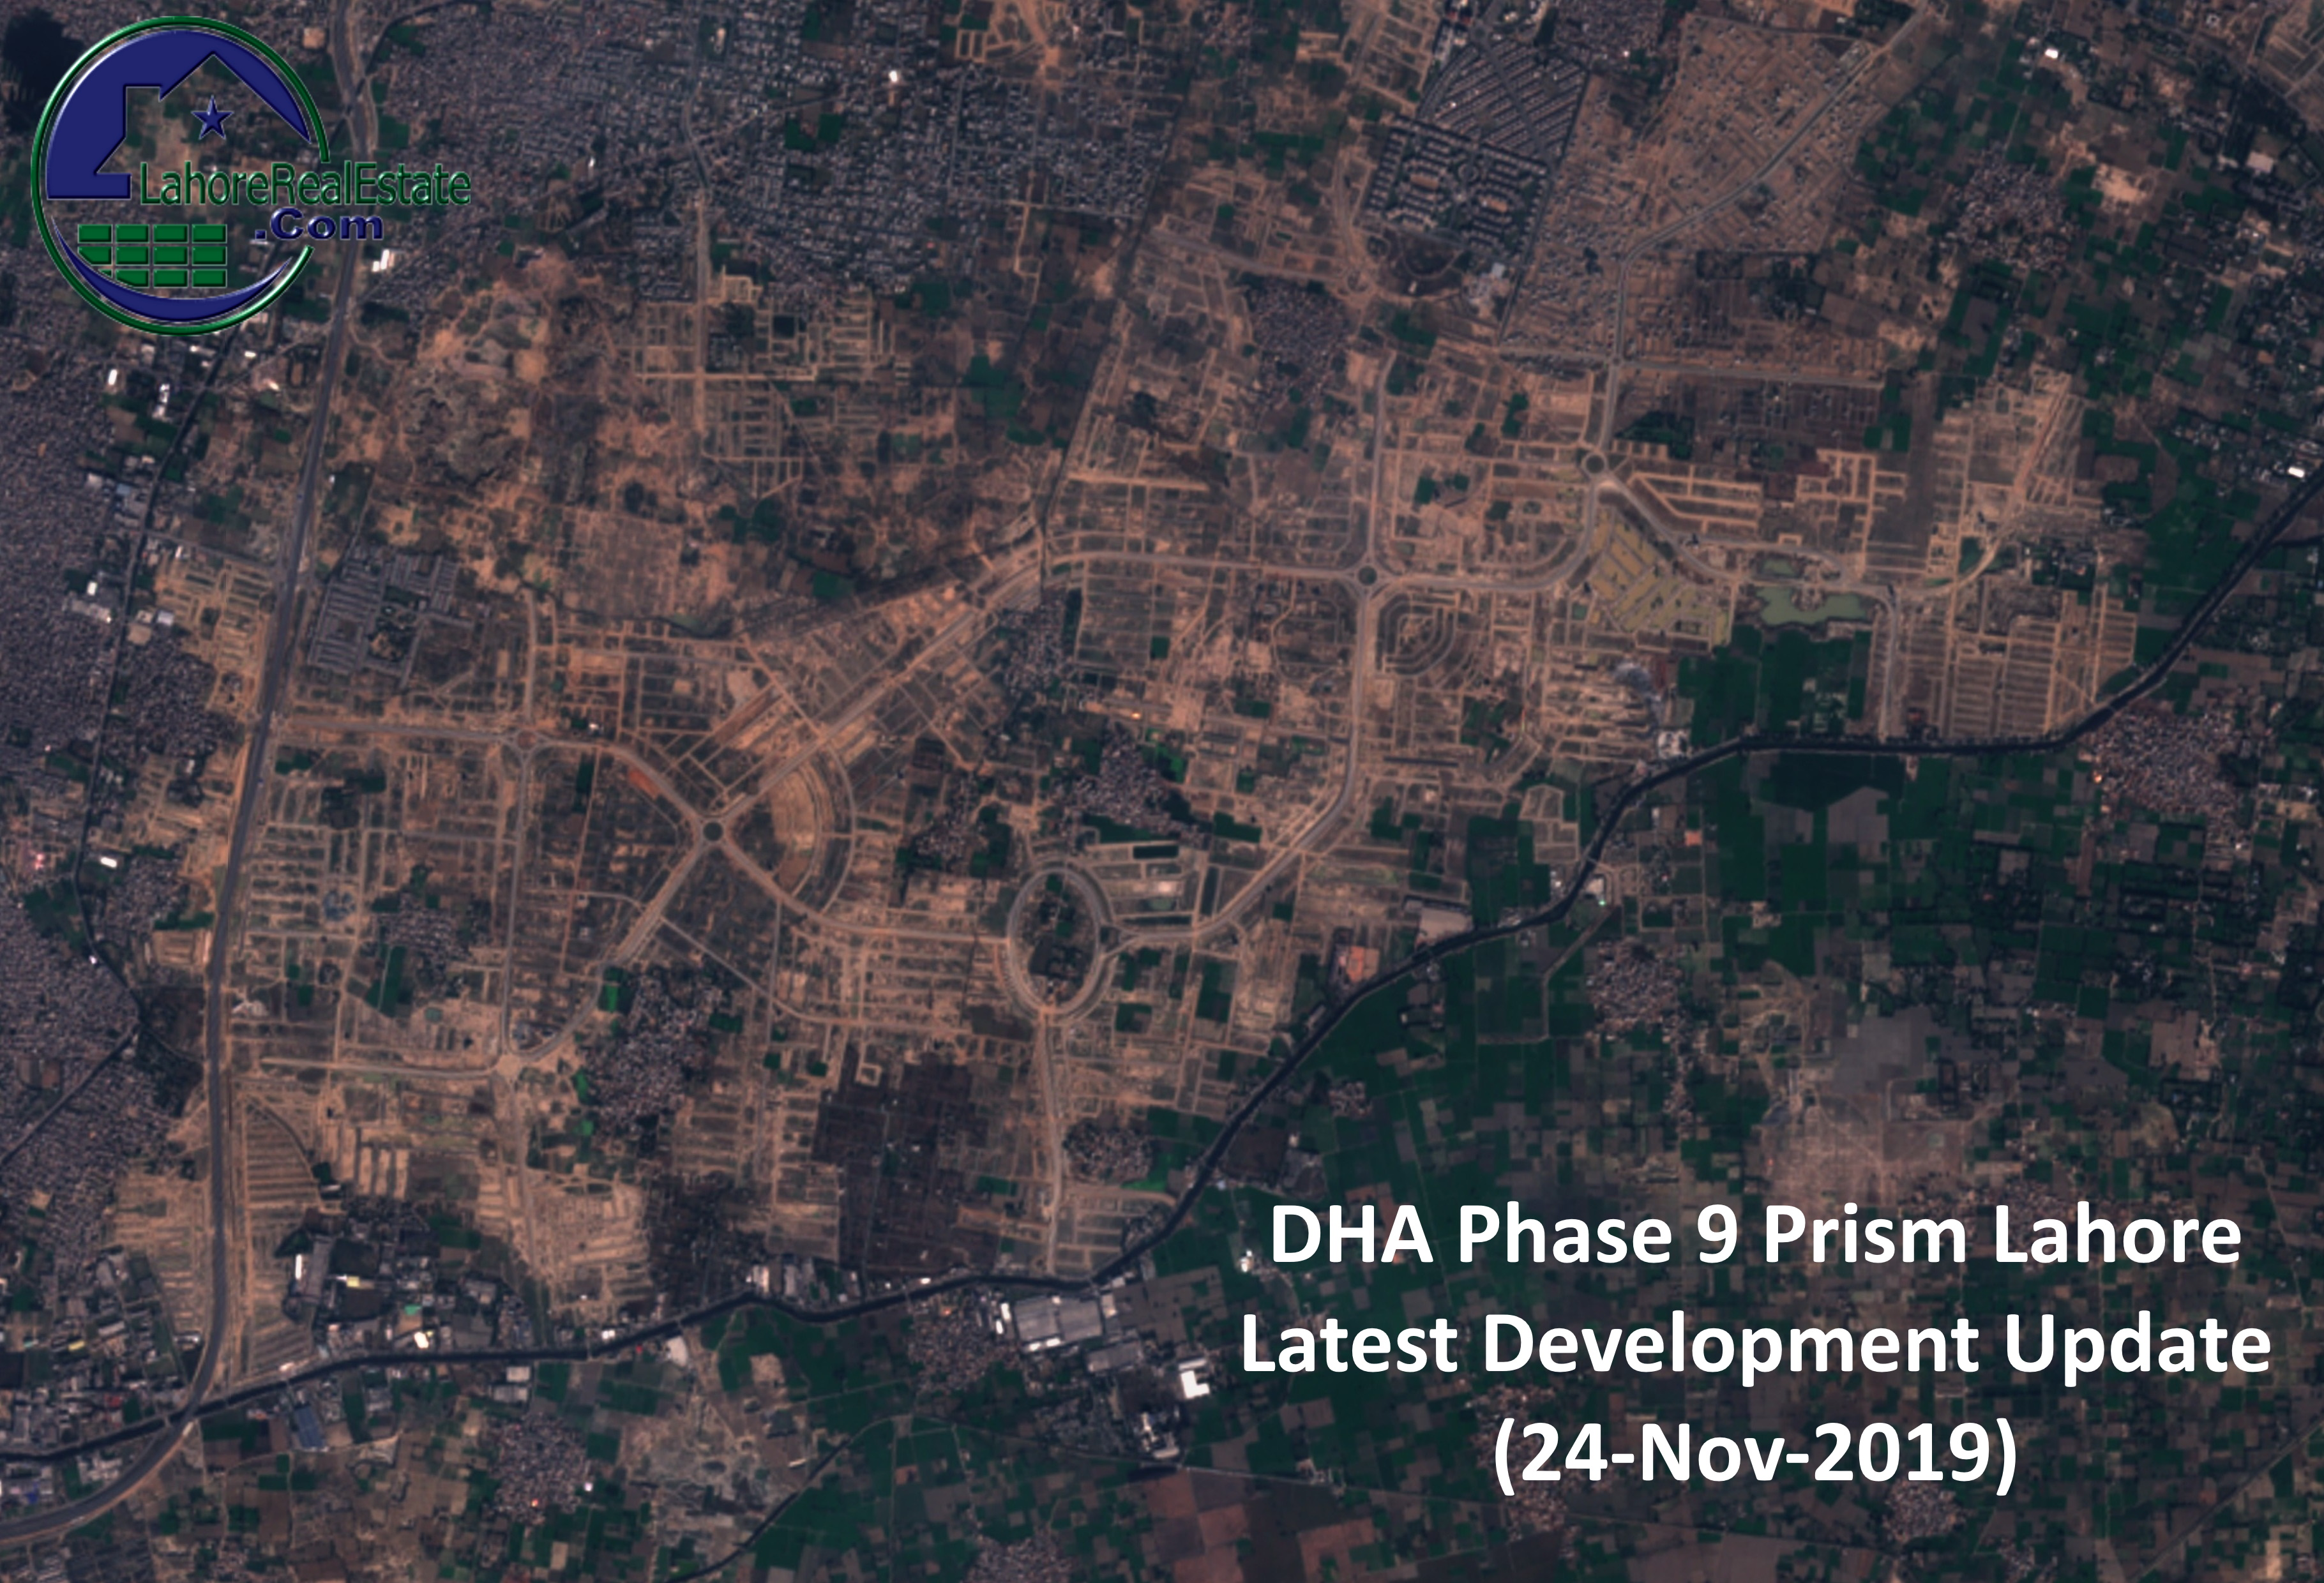 DHA Lahore Phase 9 Prism